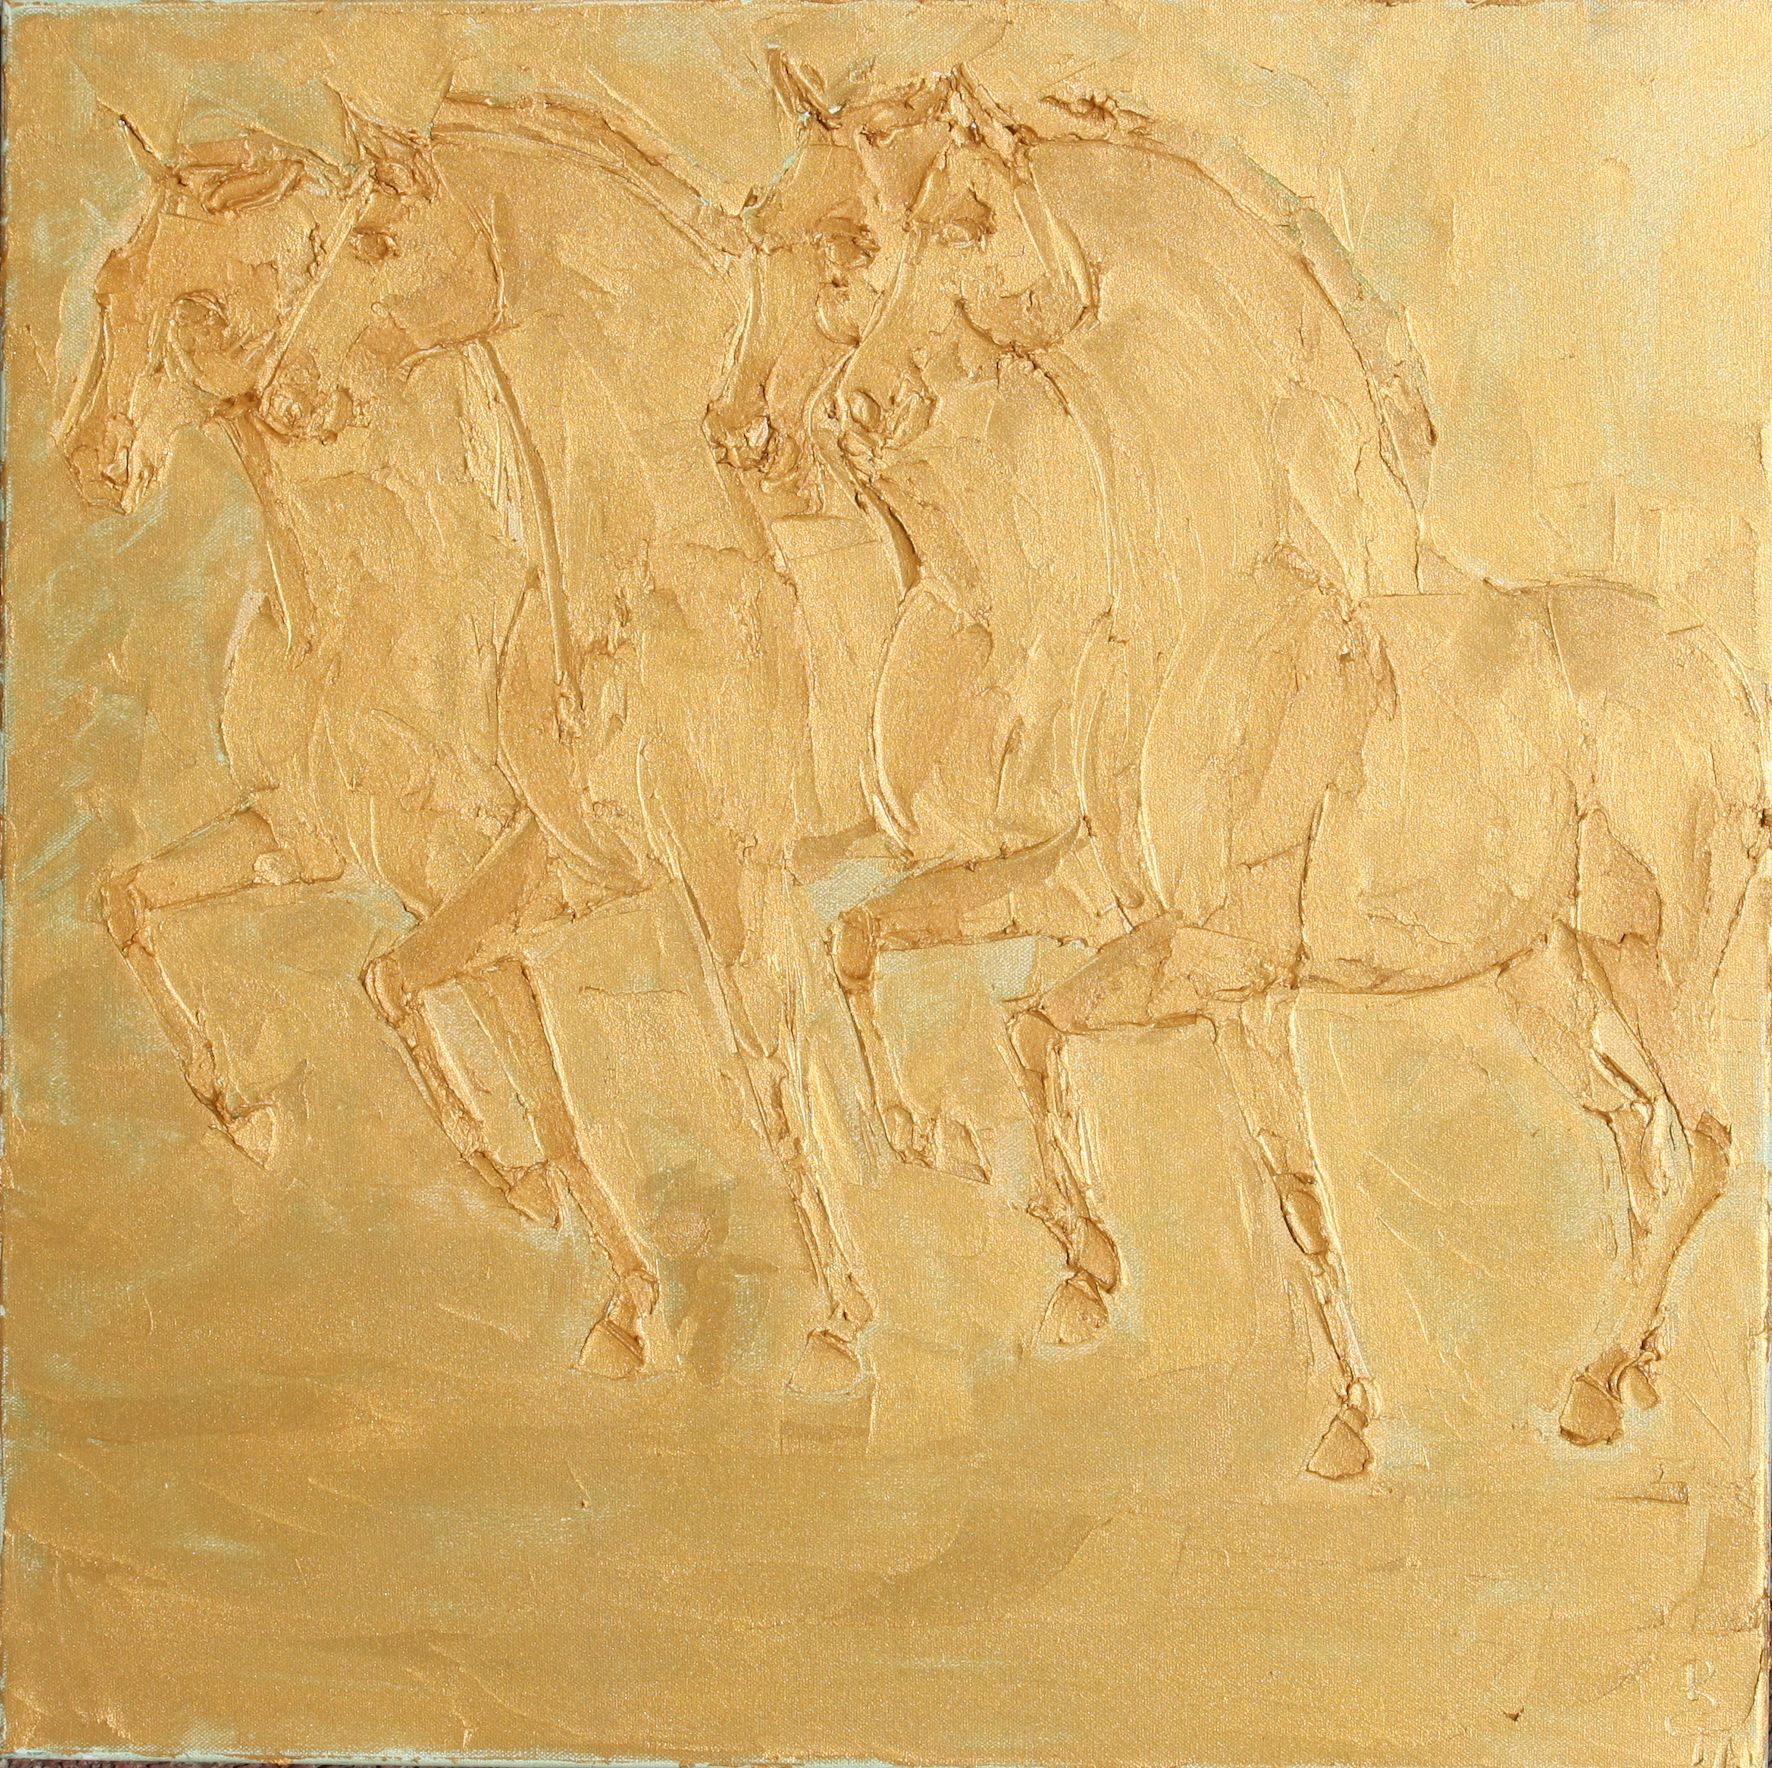 Saint Marks Horses 60cm X 60cm Sculpted Gold Oil Paint On Canvas 2018